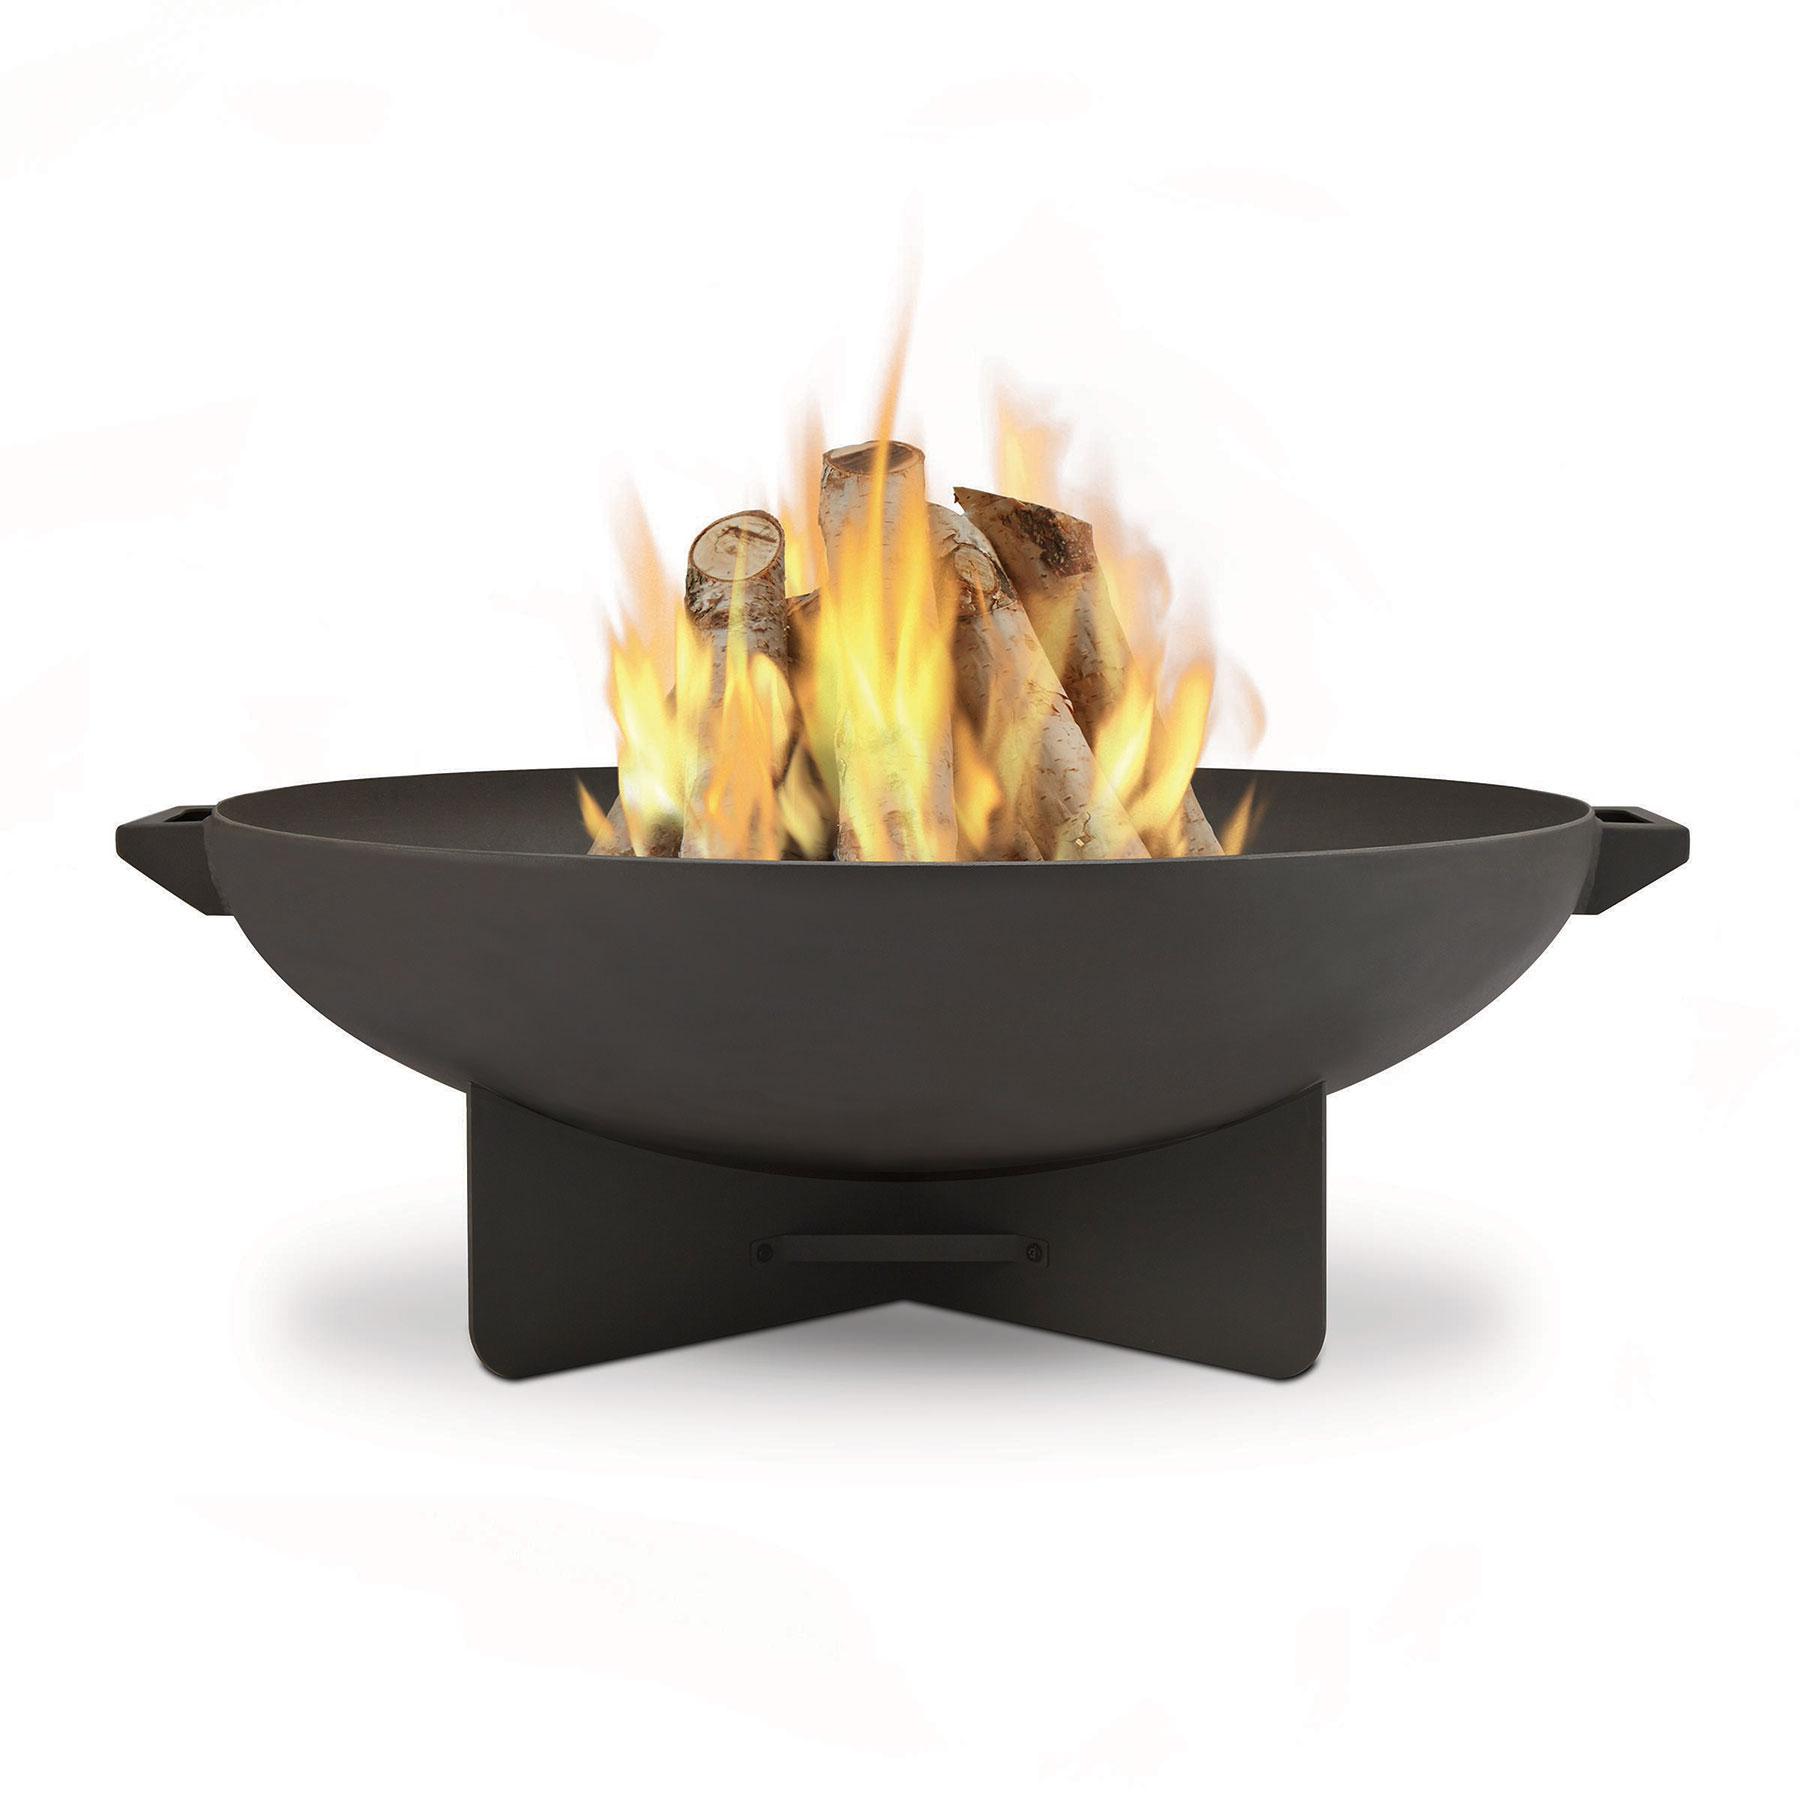 Best Fire Pits: Real Flame Anson Wood Burning Steel Fire Bowl